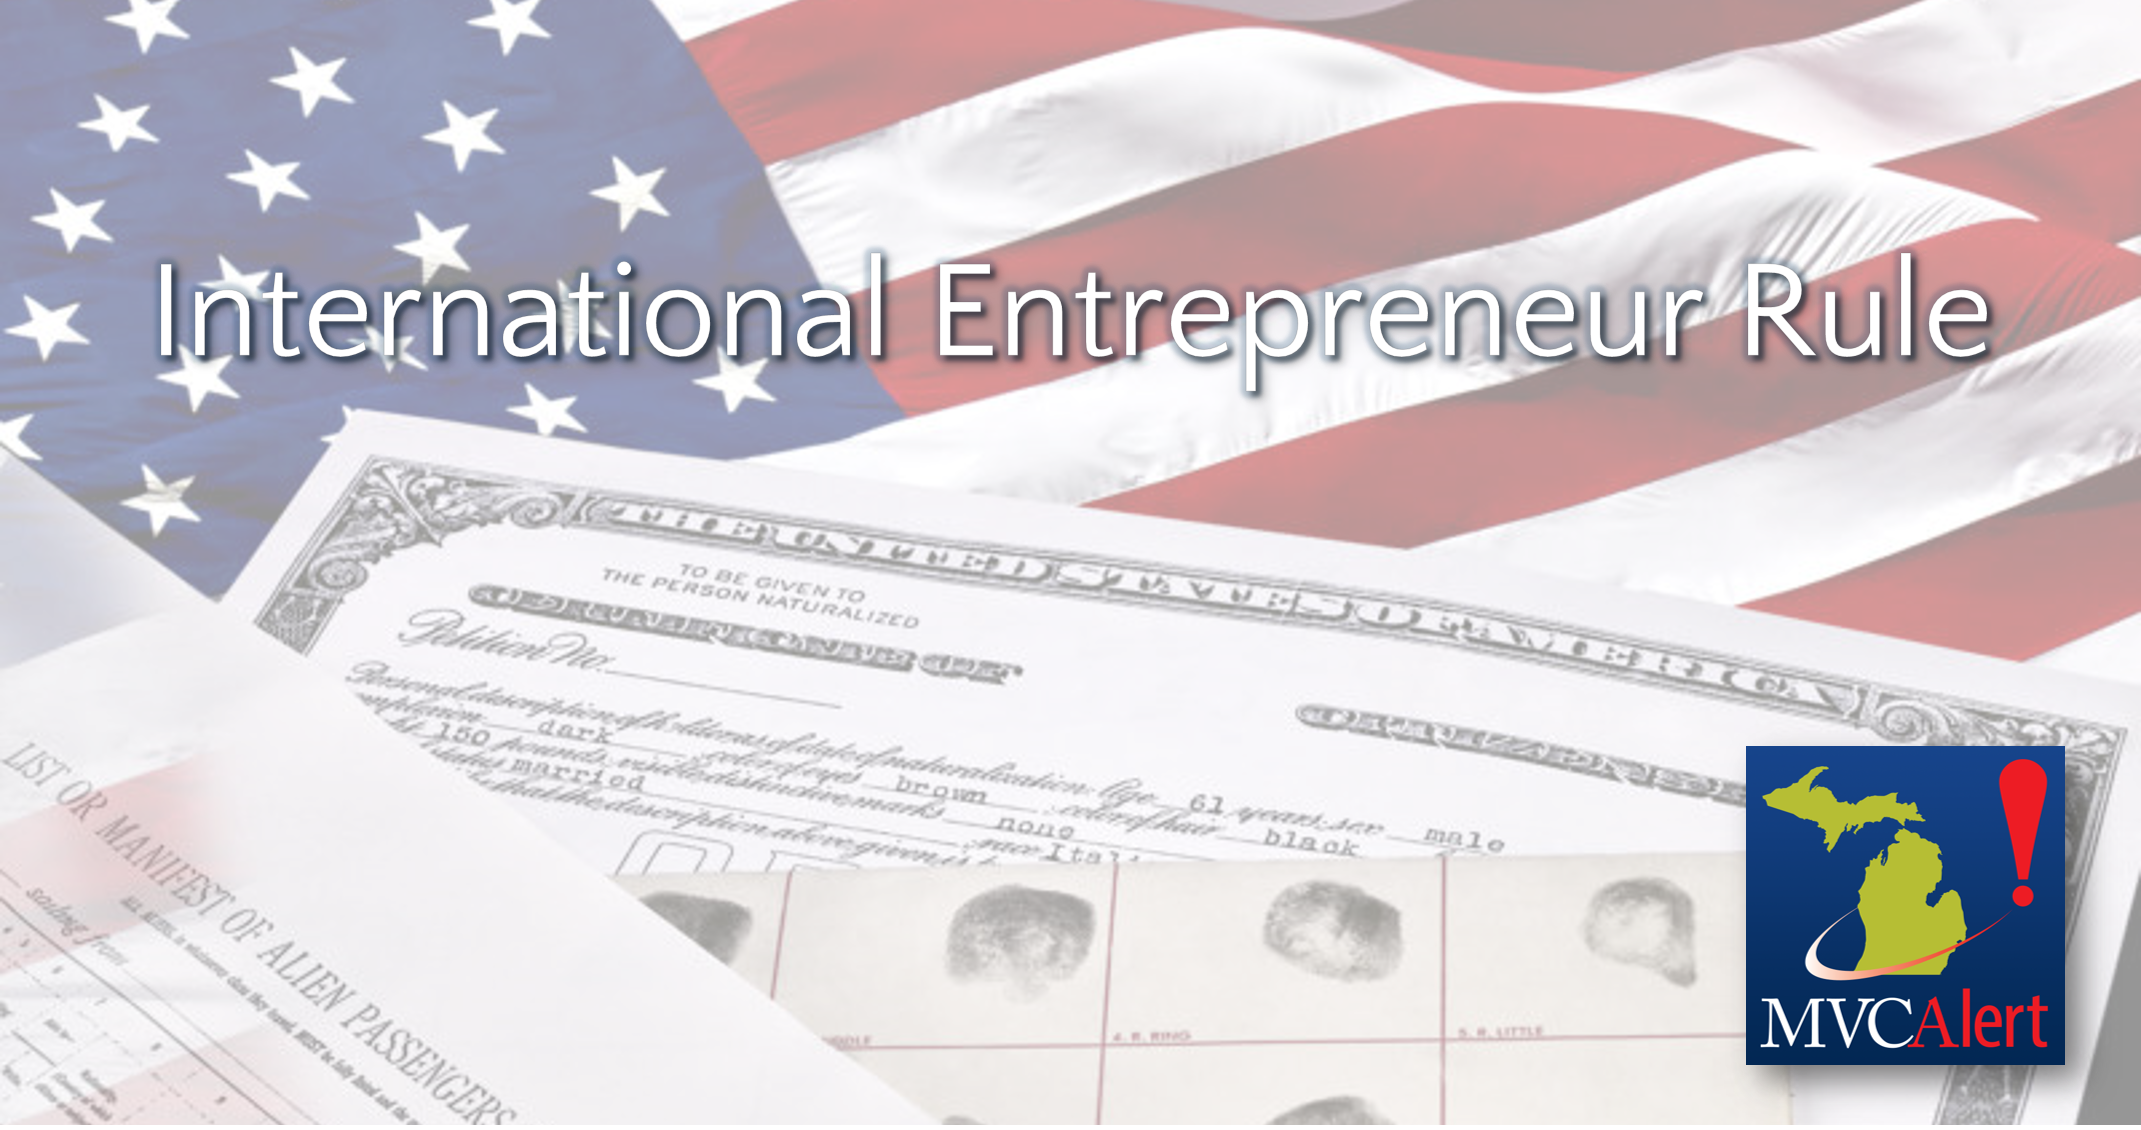 international entrepreneurship at infusion Custom international entrepreneurship at infusion hbr case study recommendation memo & case analysis for just $11 mba & executive mba level innovation & entrepreneurship case memo based on hbr framework.